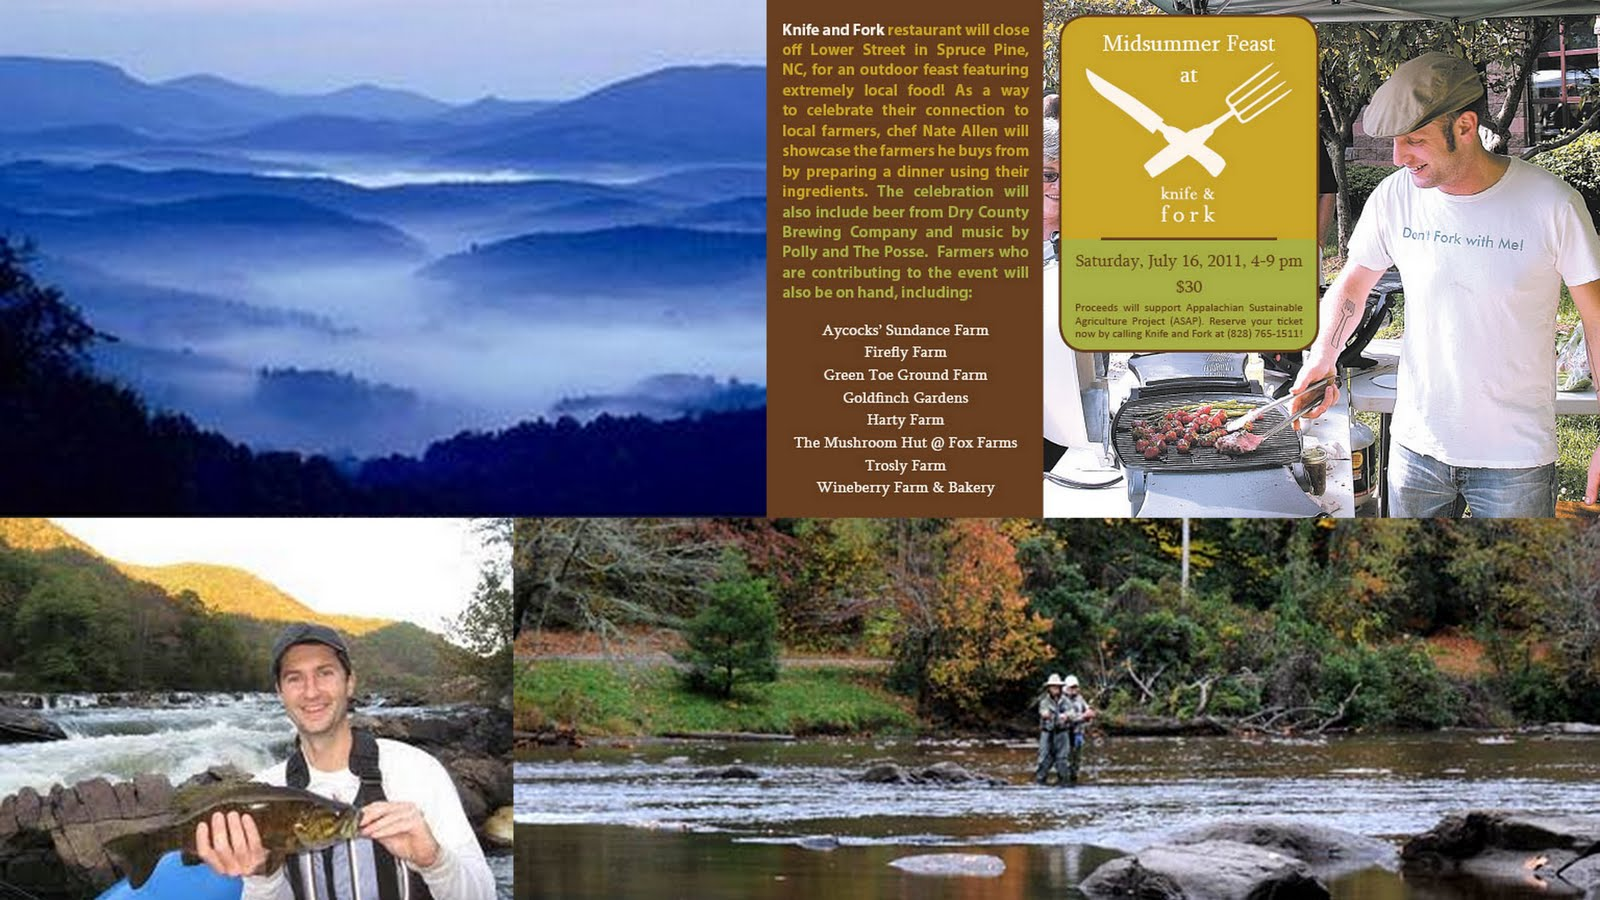 The cove at celo mountain blog mid summer magic in the mountains farms fishing and feasting - Trout farming business family mountains ...